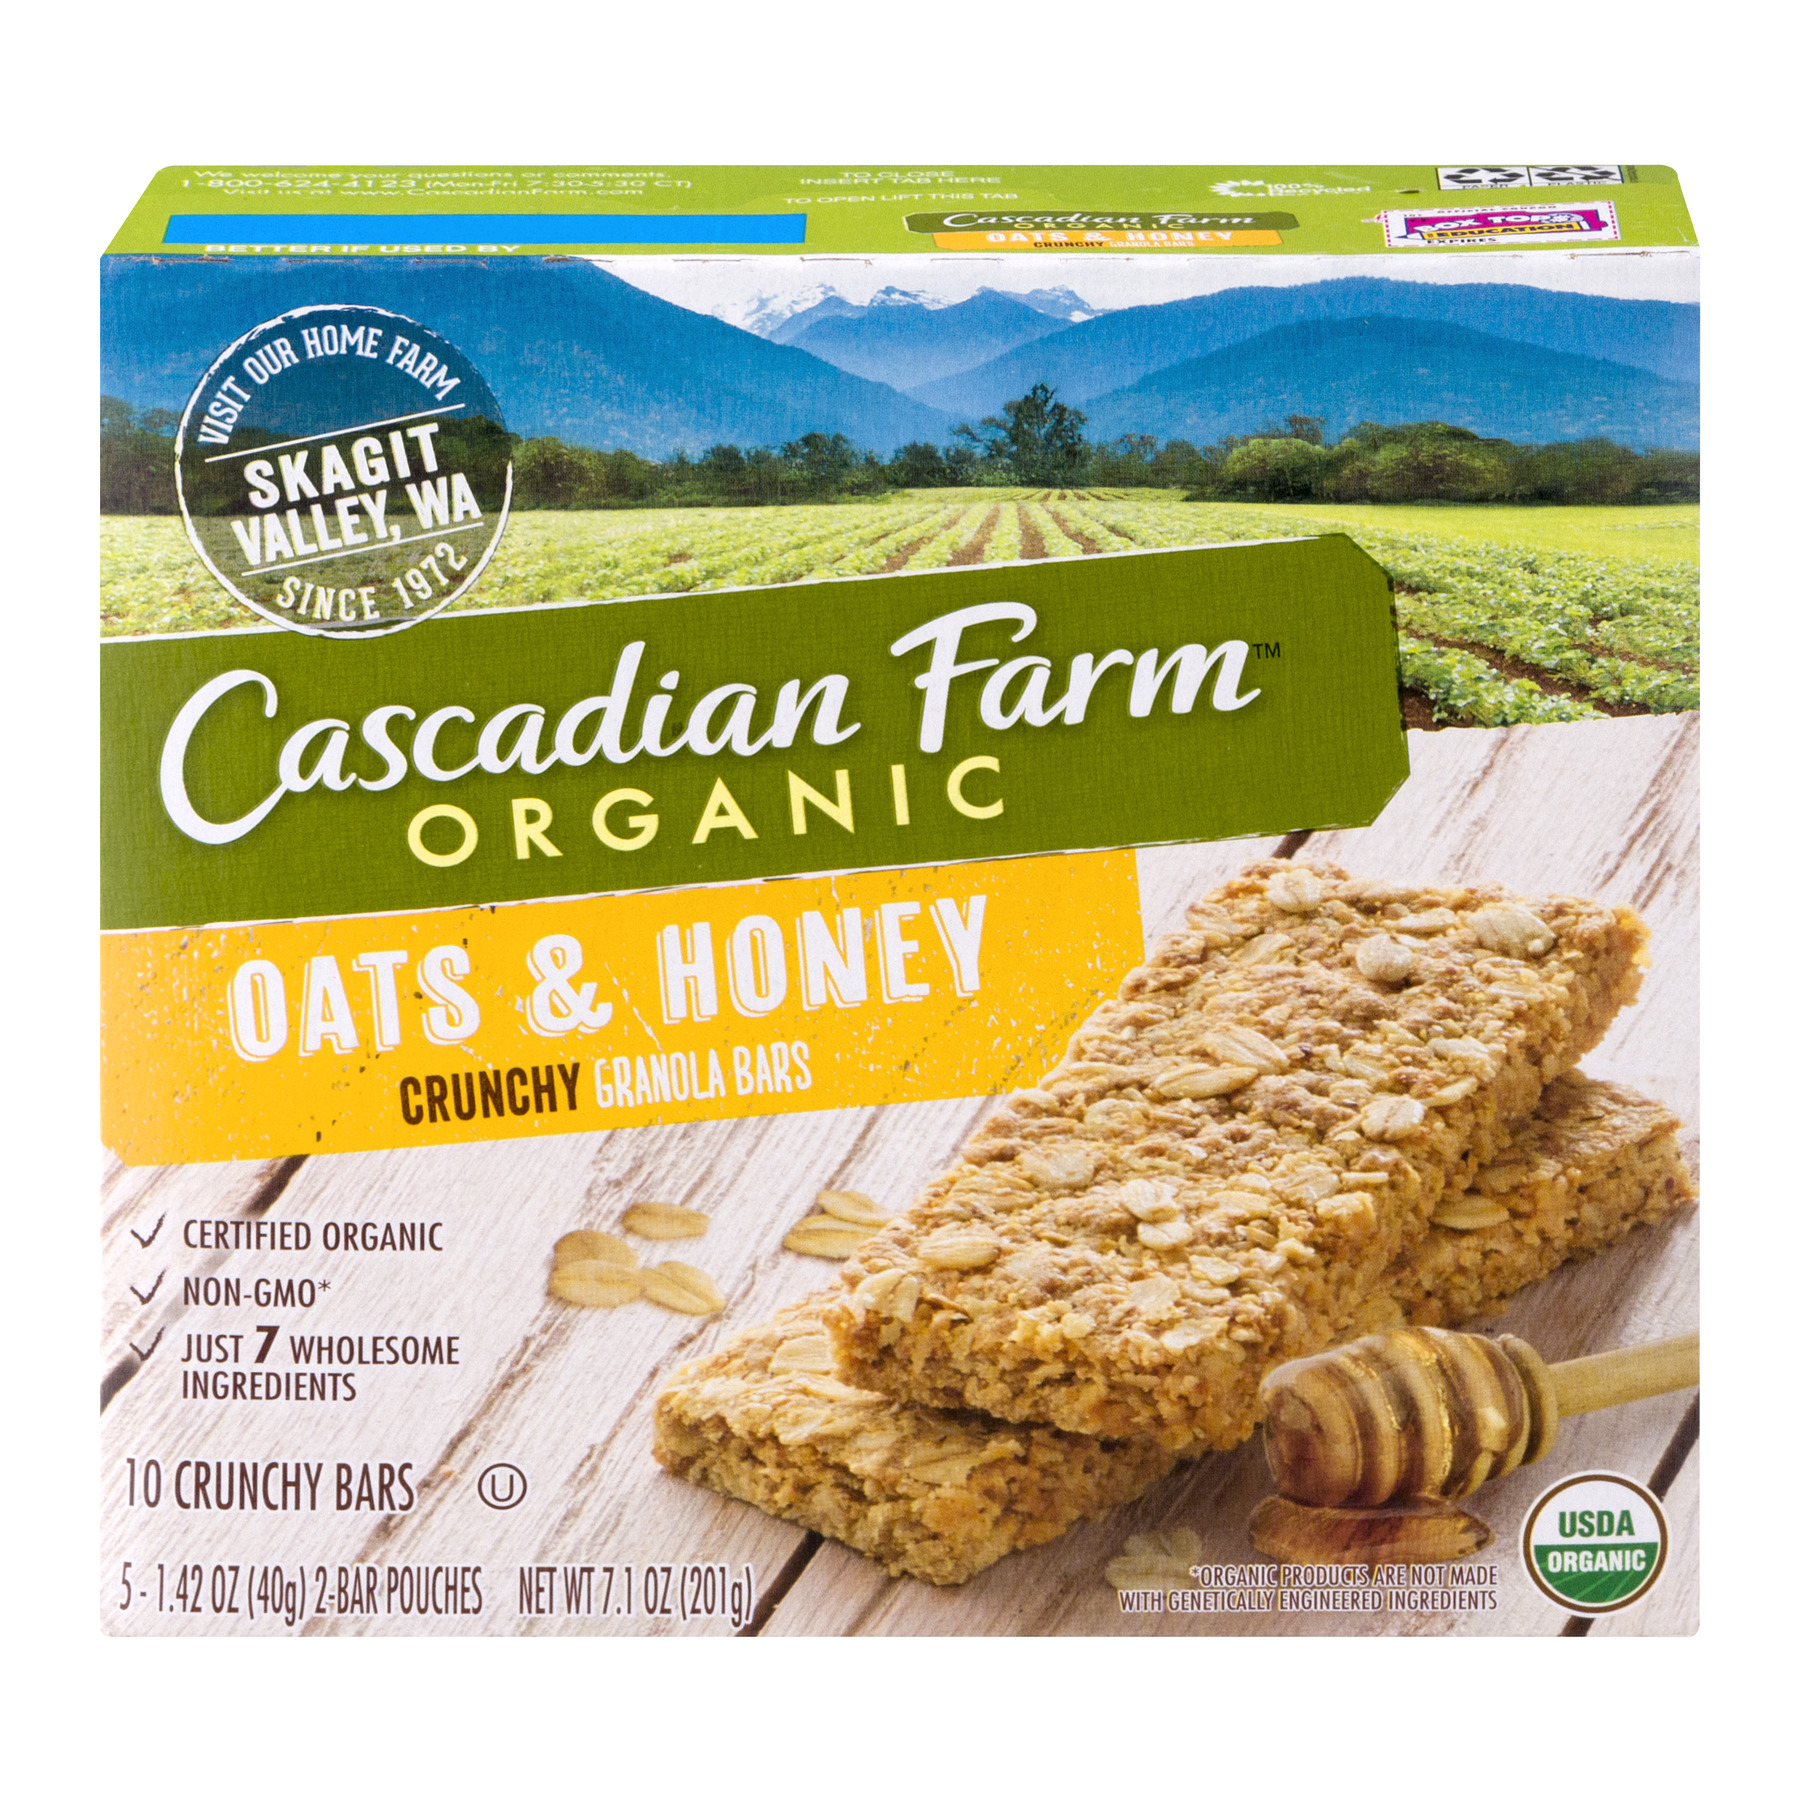 Cascadian Farm Organic Granola Bars Oats & Honey Crunchy Granola Bars